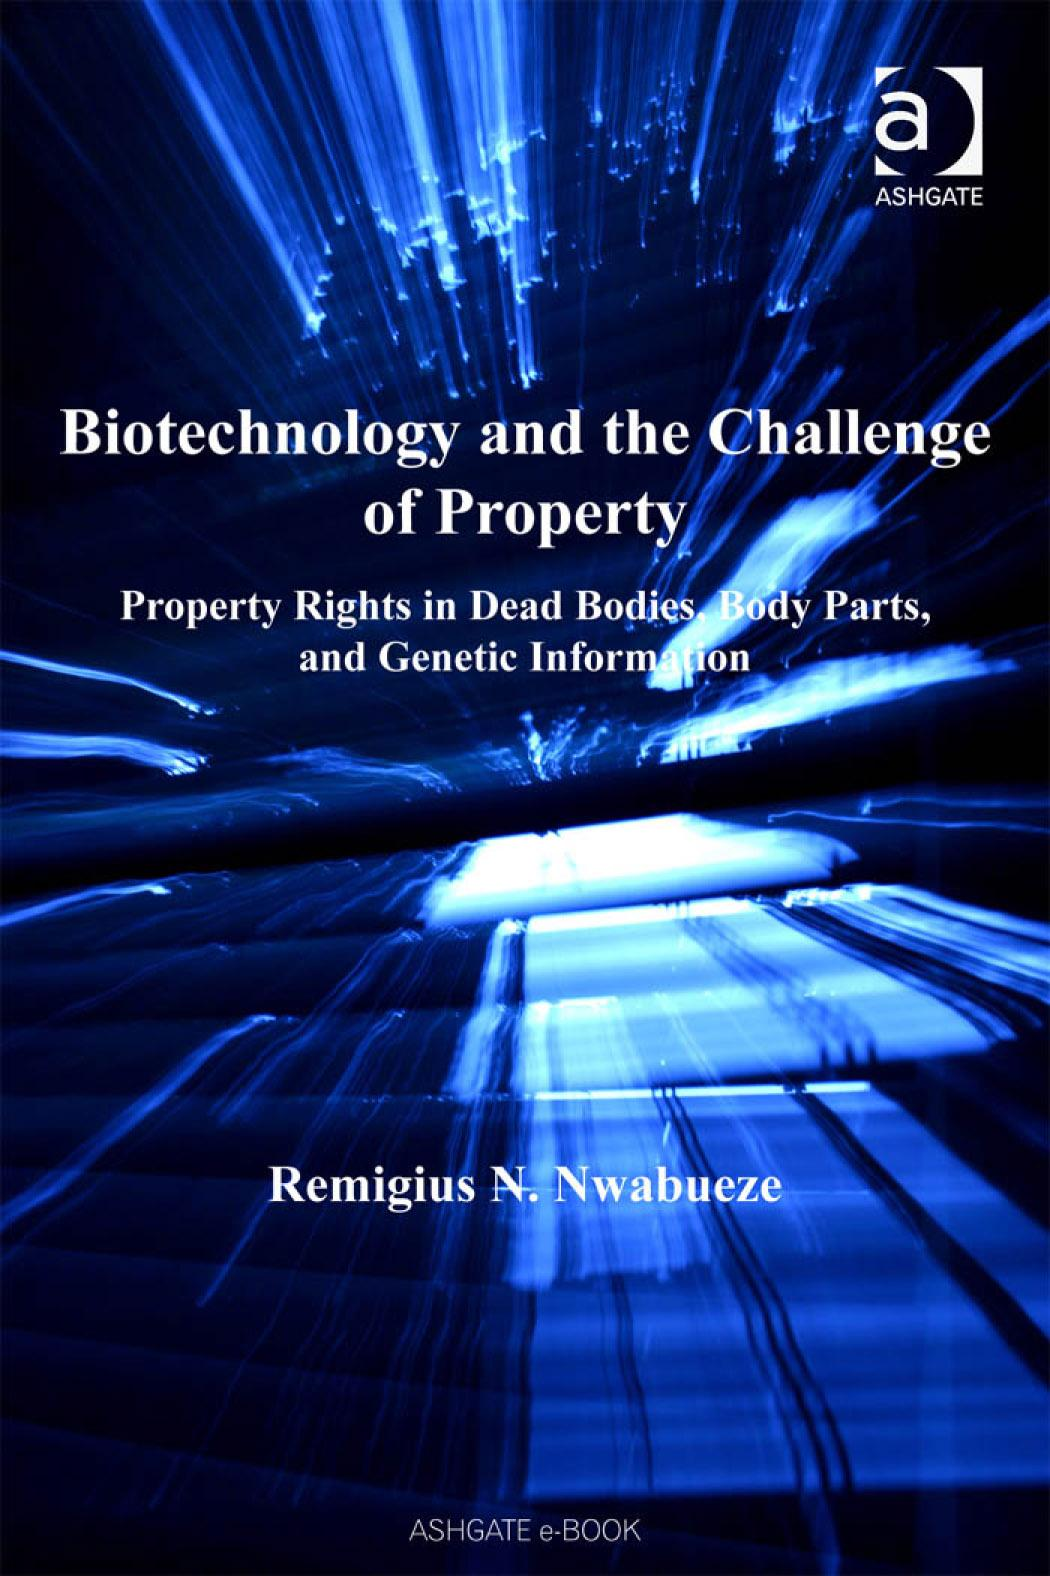 Biotechnology and the Challenge of Property Remigius N. Nwabueze